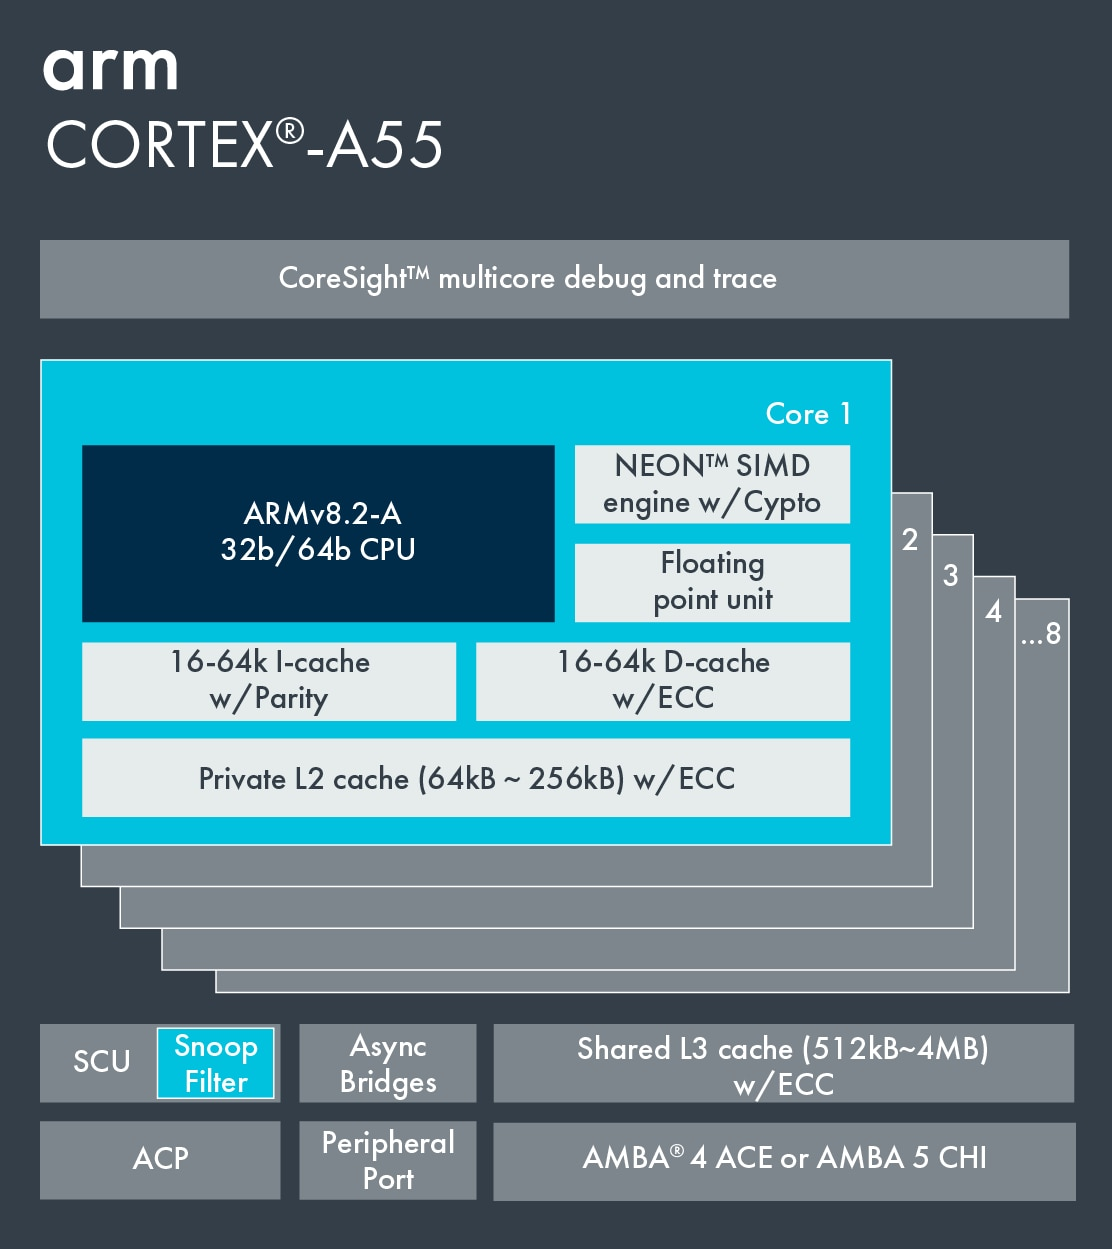 Information on Cortex-A55.